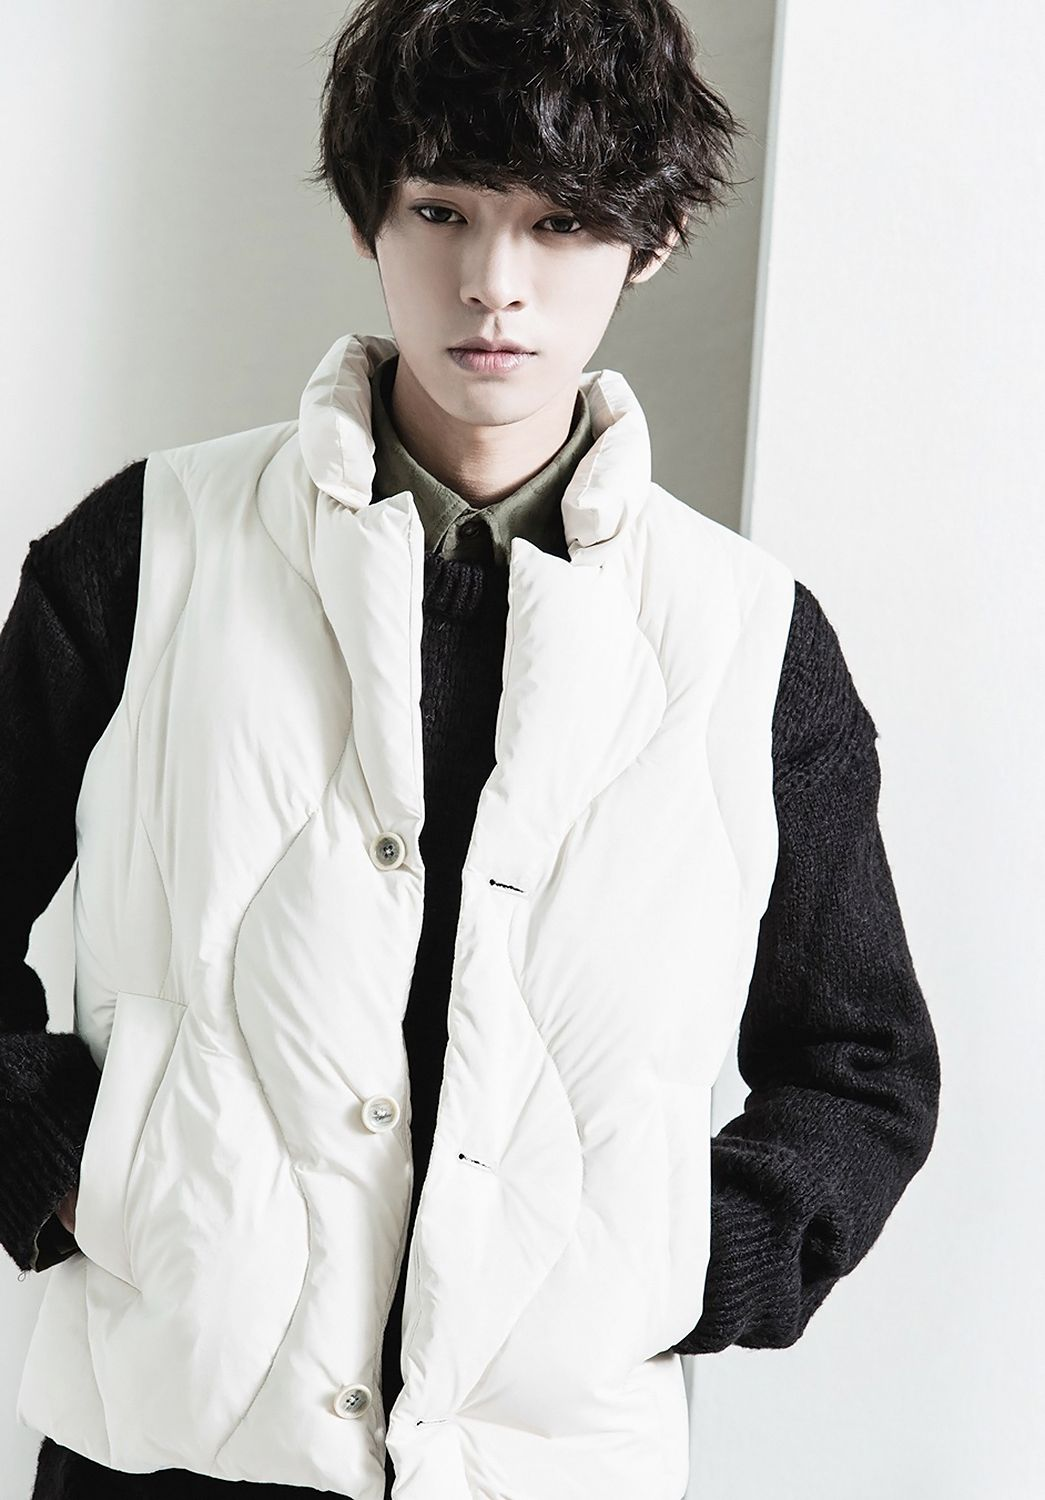 Jung Joon Young - Siero F/W 2014 | jung joon young in 2019